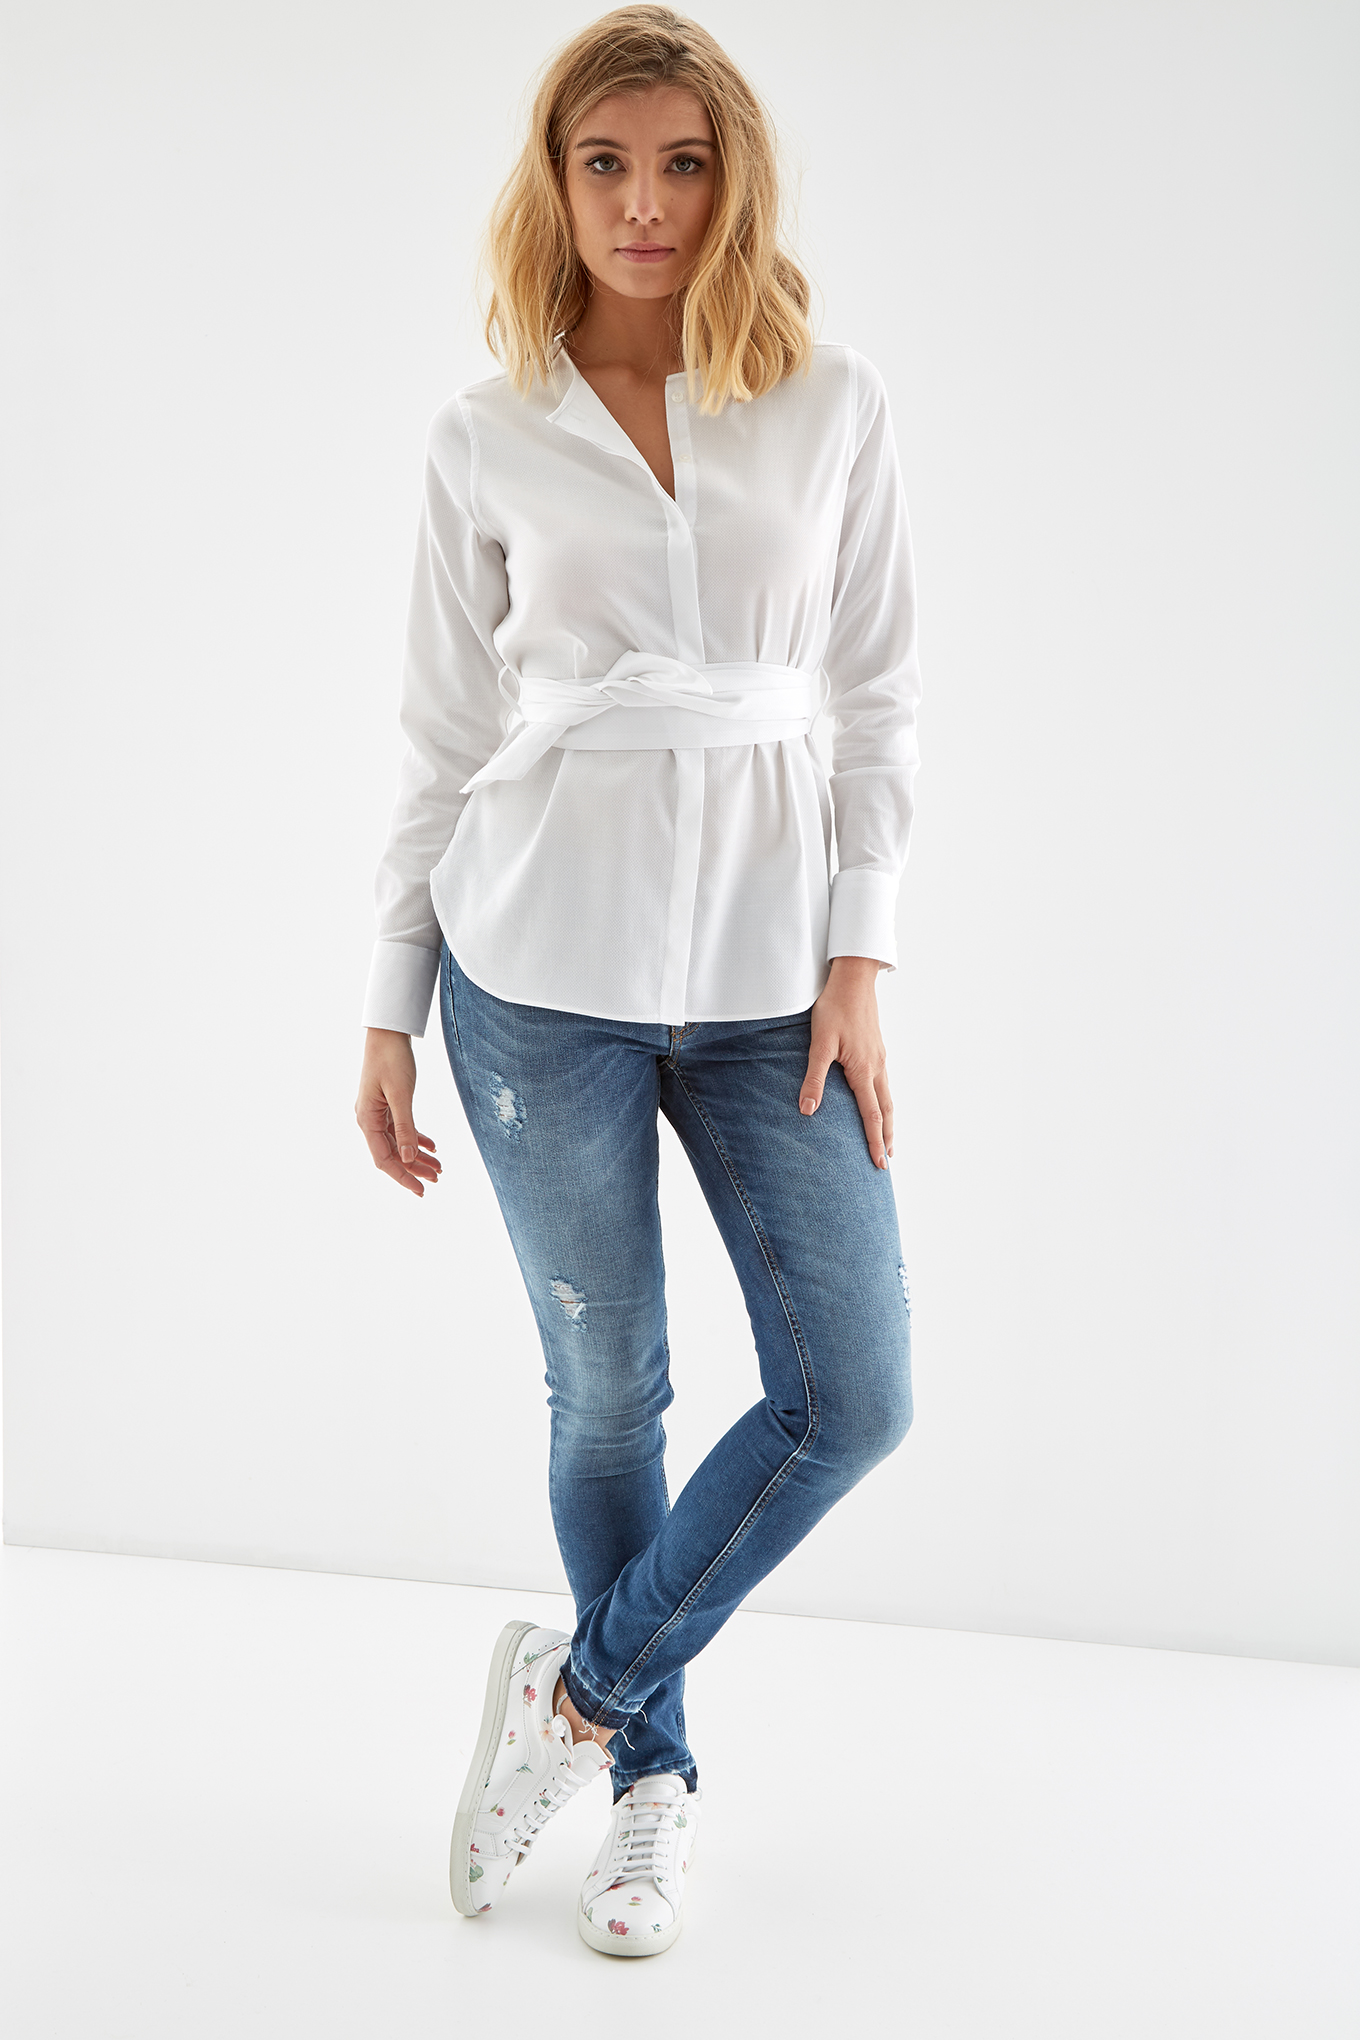 Camisa Branco Casual Mulher